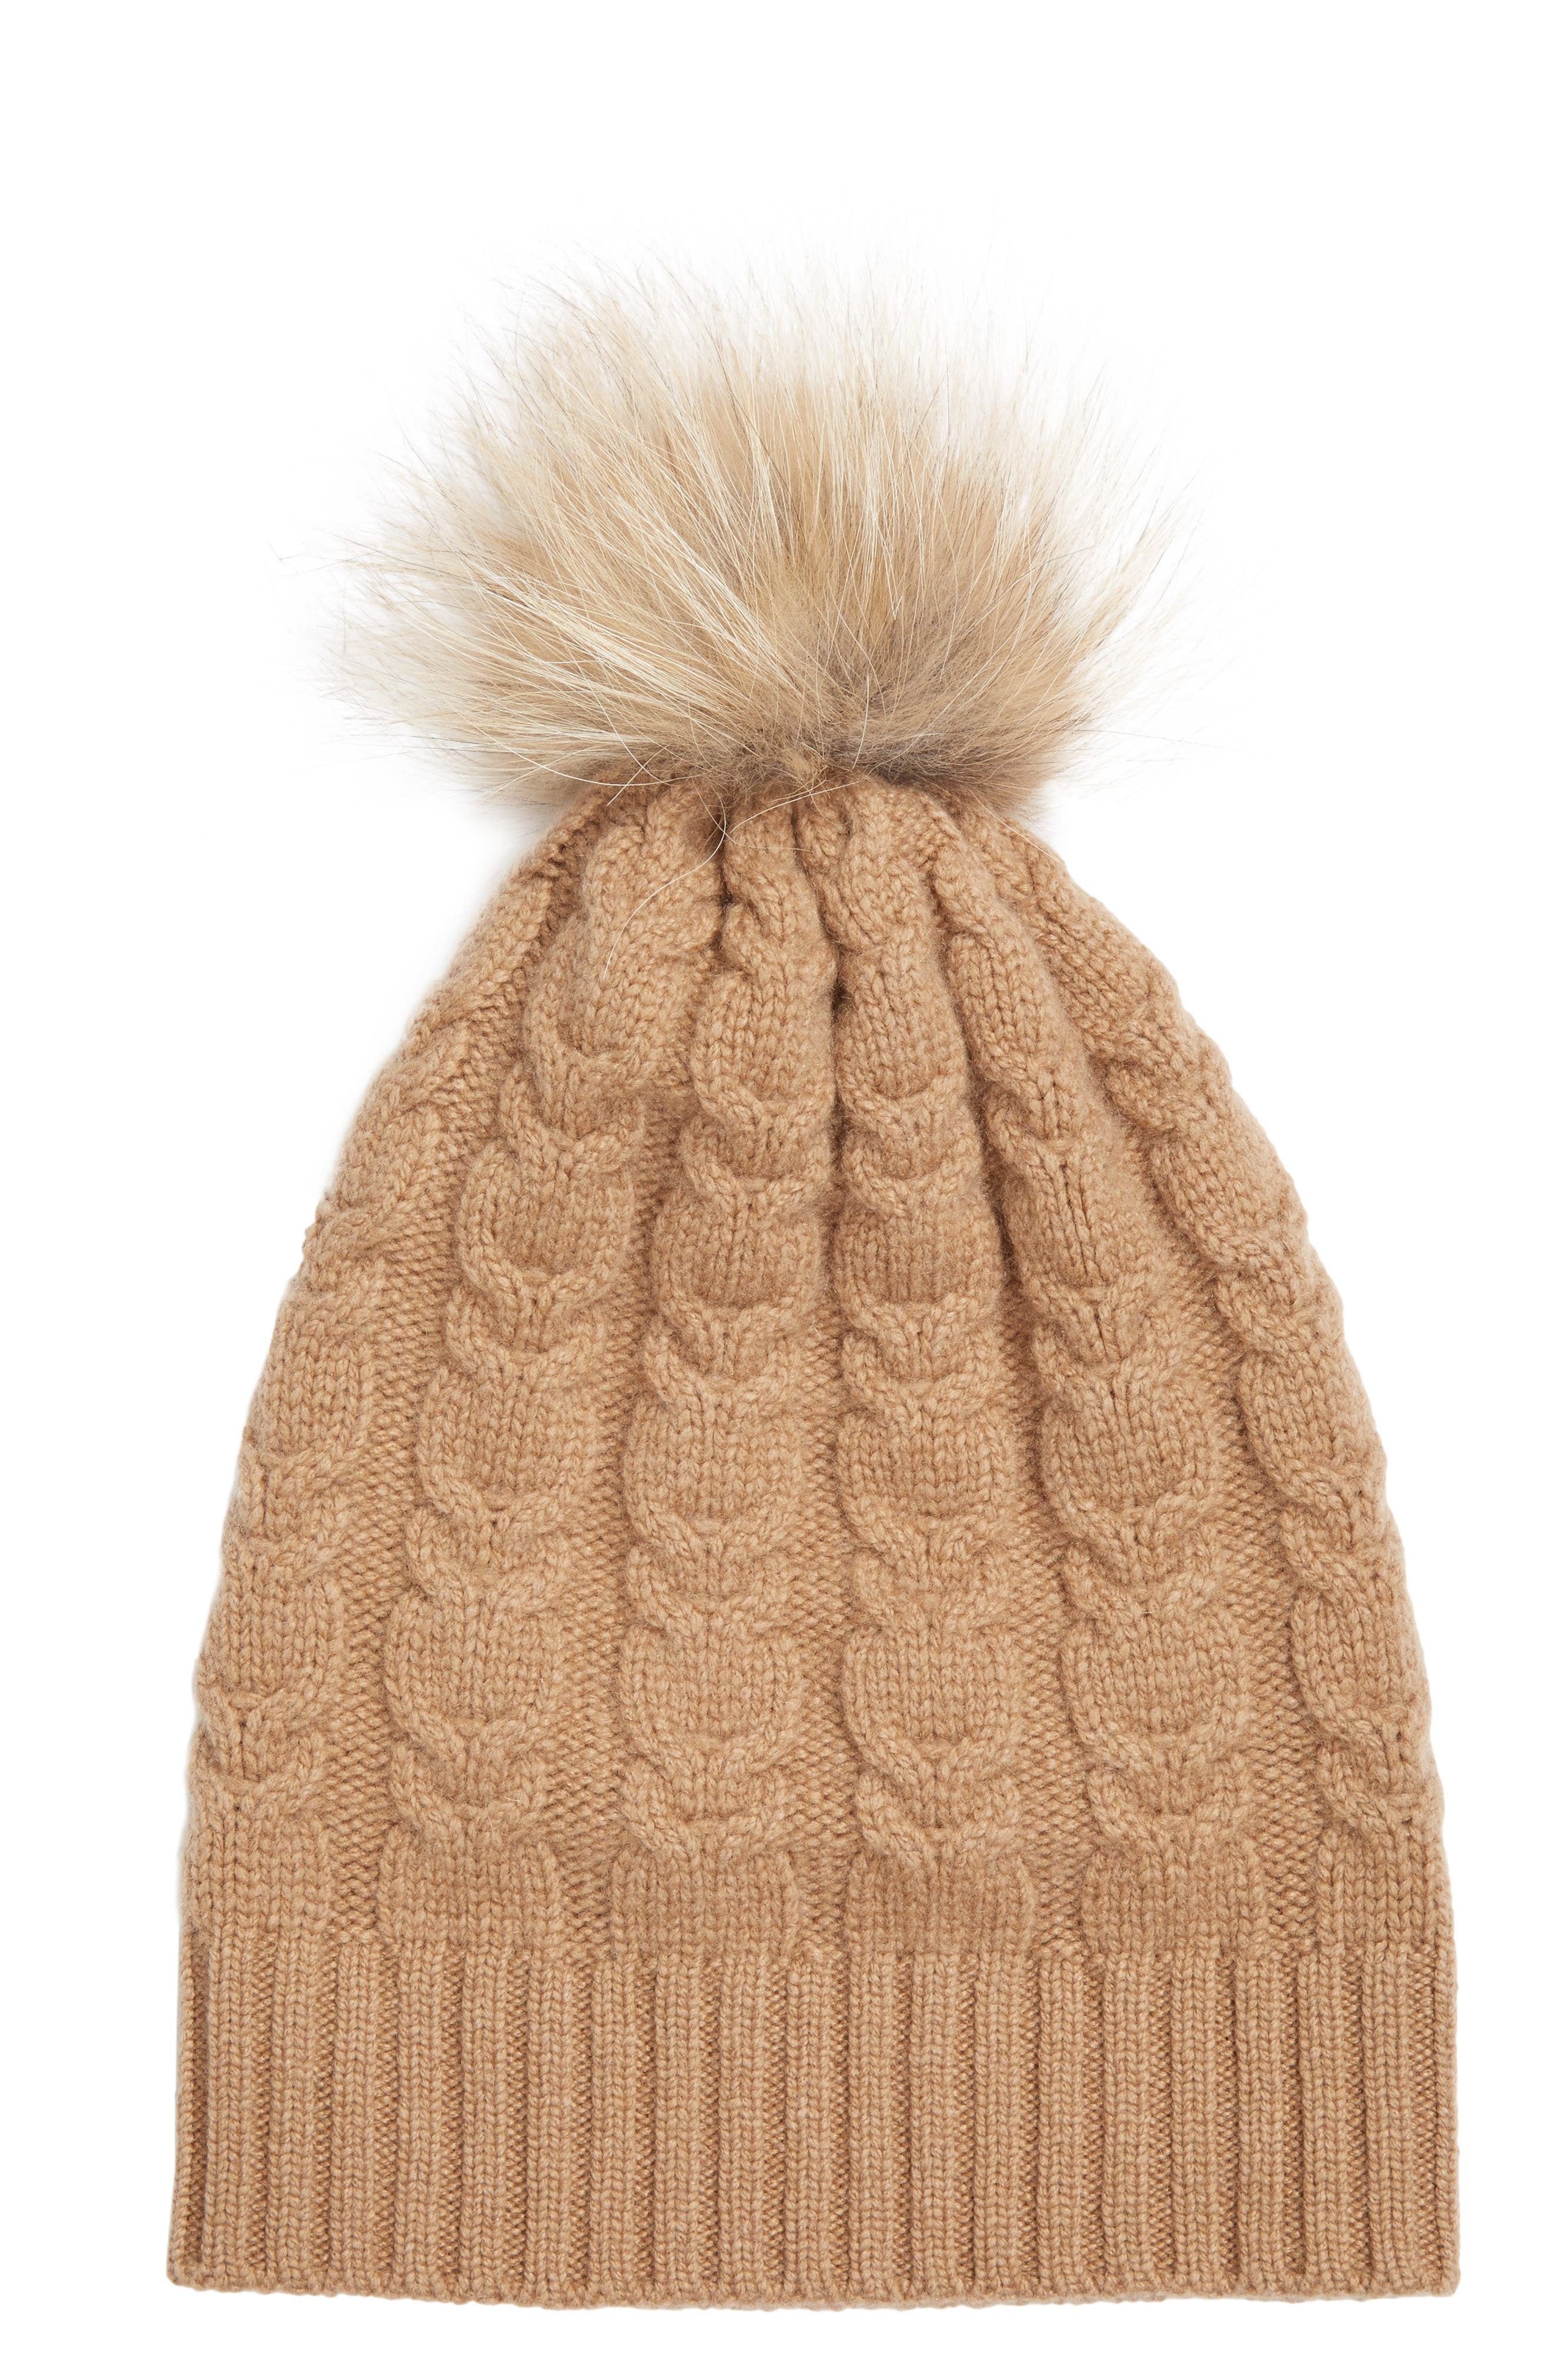 Alternate Image 1 Selected - Fabiana Filippi Cable Knit Cashmere Beanie with Genuine Fox Fur Pom